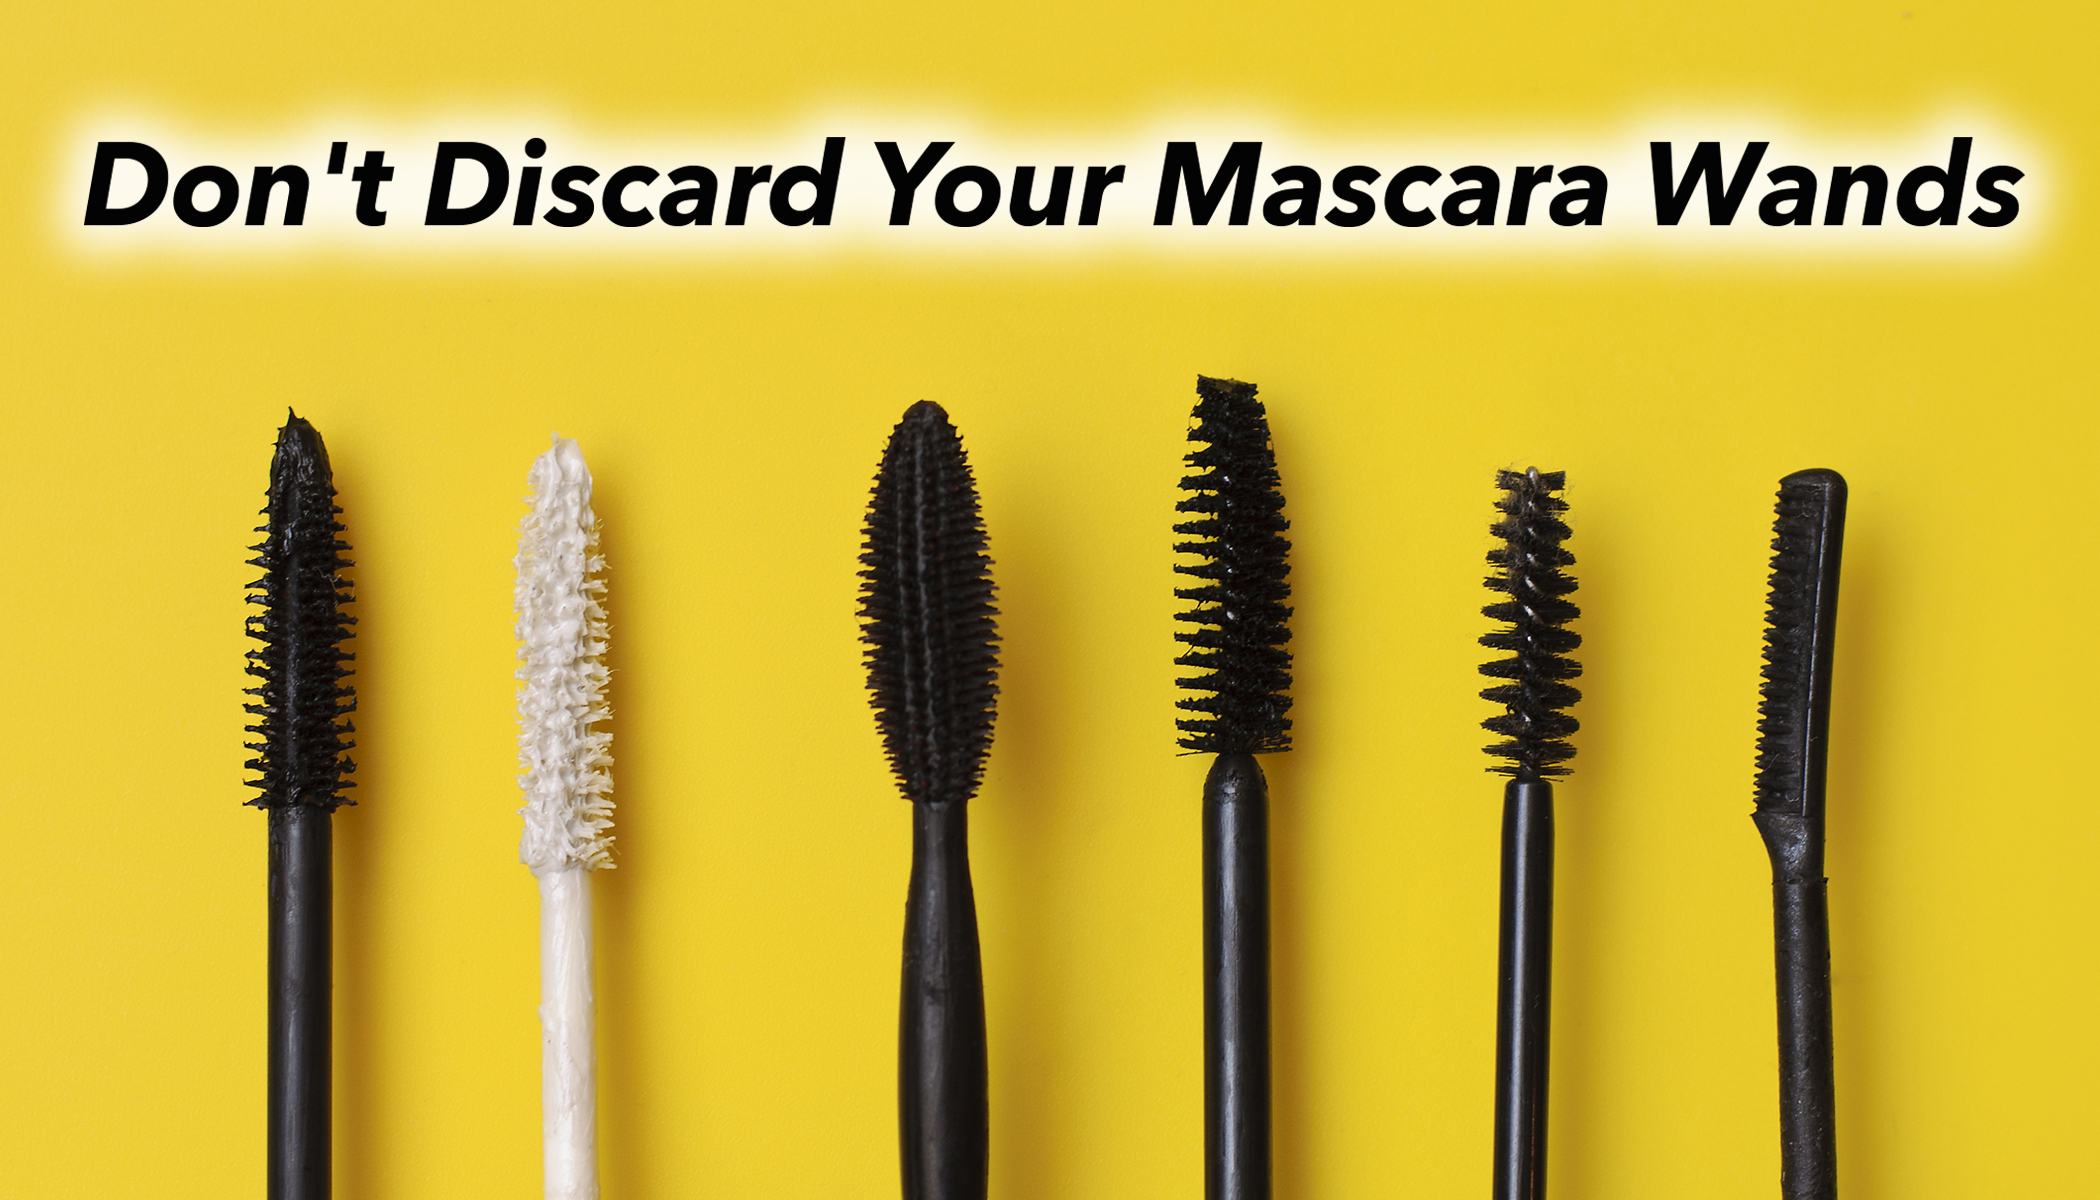 Give Your Used Mascara Wands a Second Chance and Help Save Wildlife